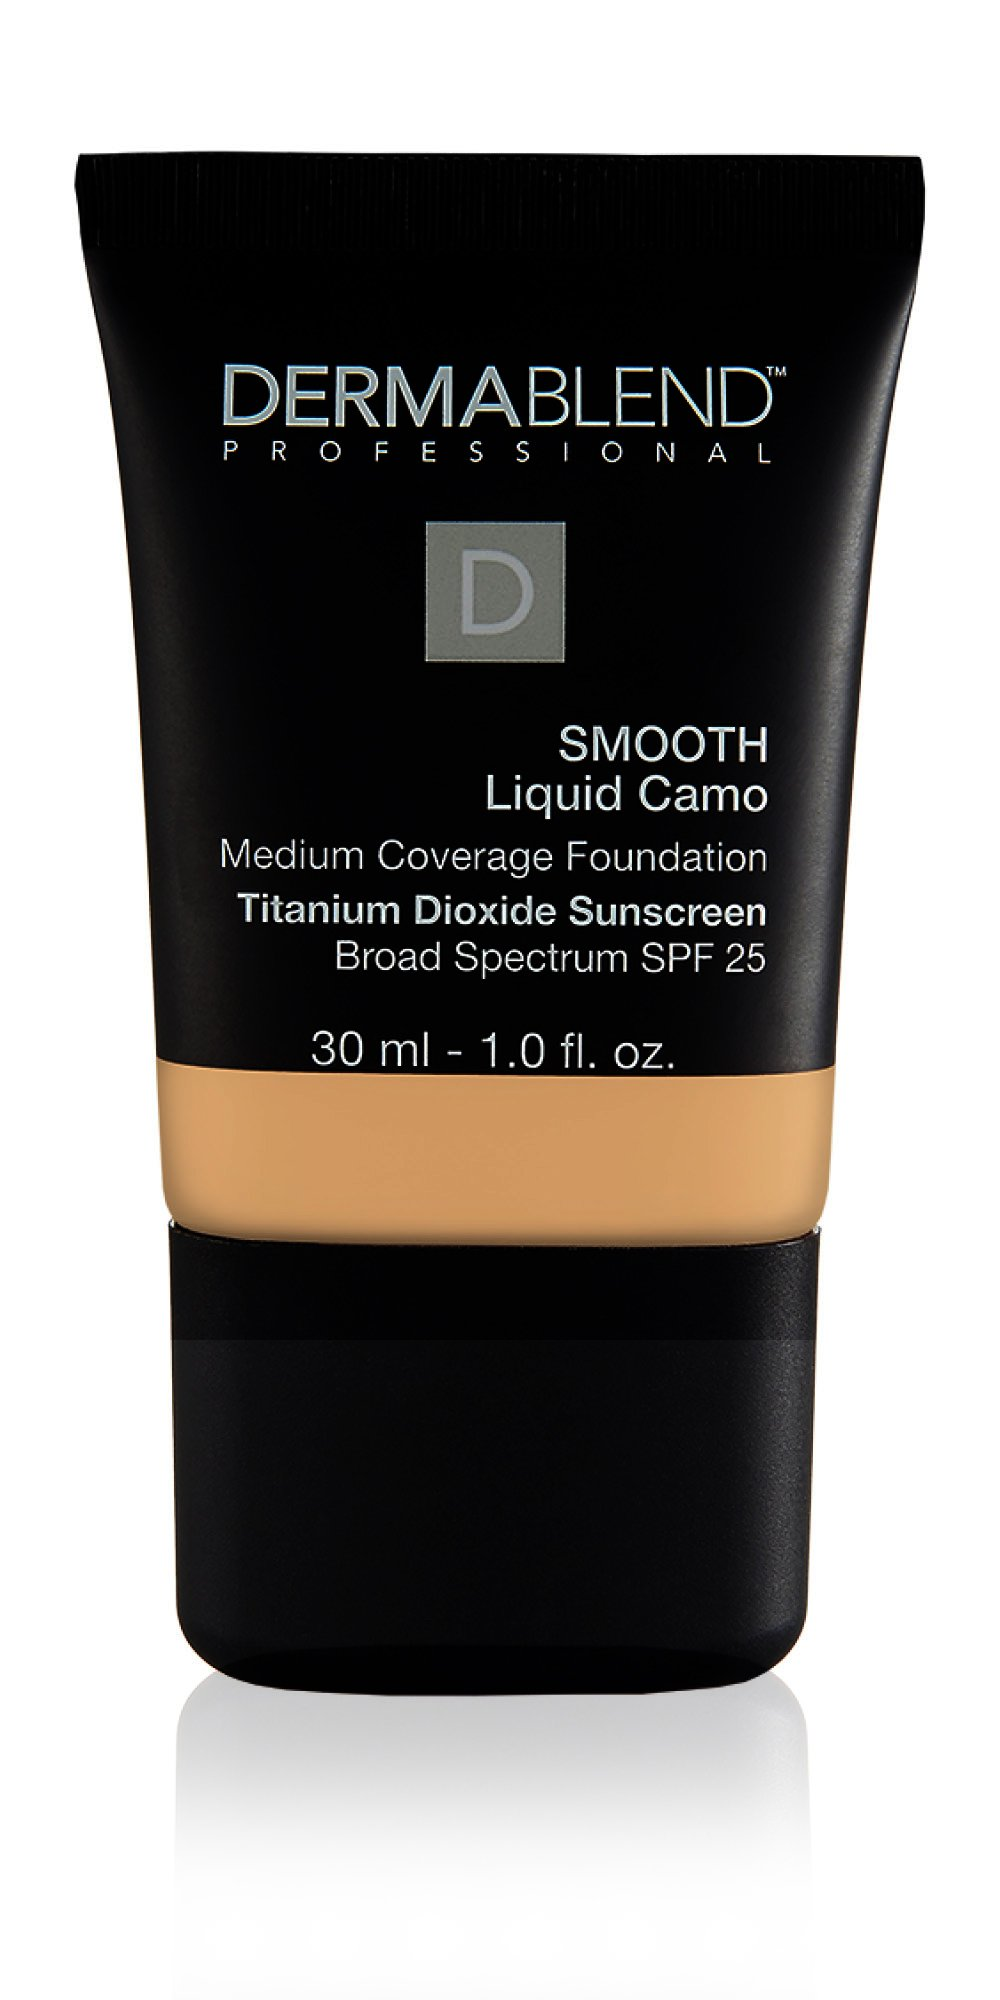 Dermablend Smooth Liquid Foundation Makeup with SPF 25 for Medium to Full Coverage, 15 shades, 1 Fl. Oz.